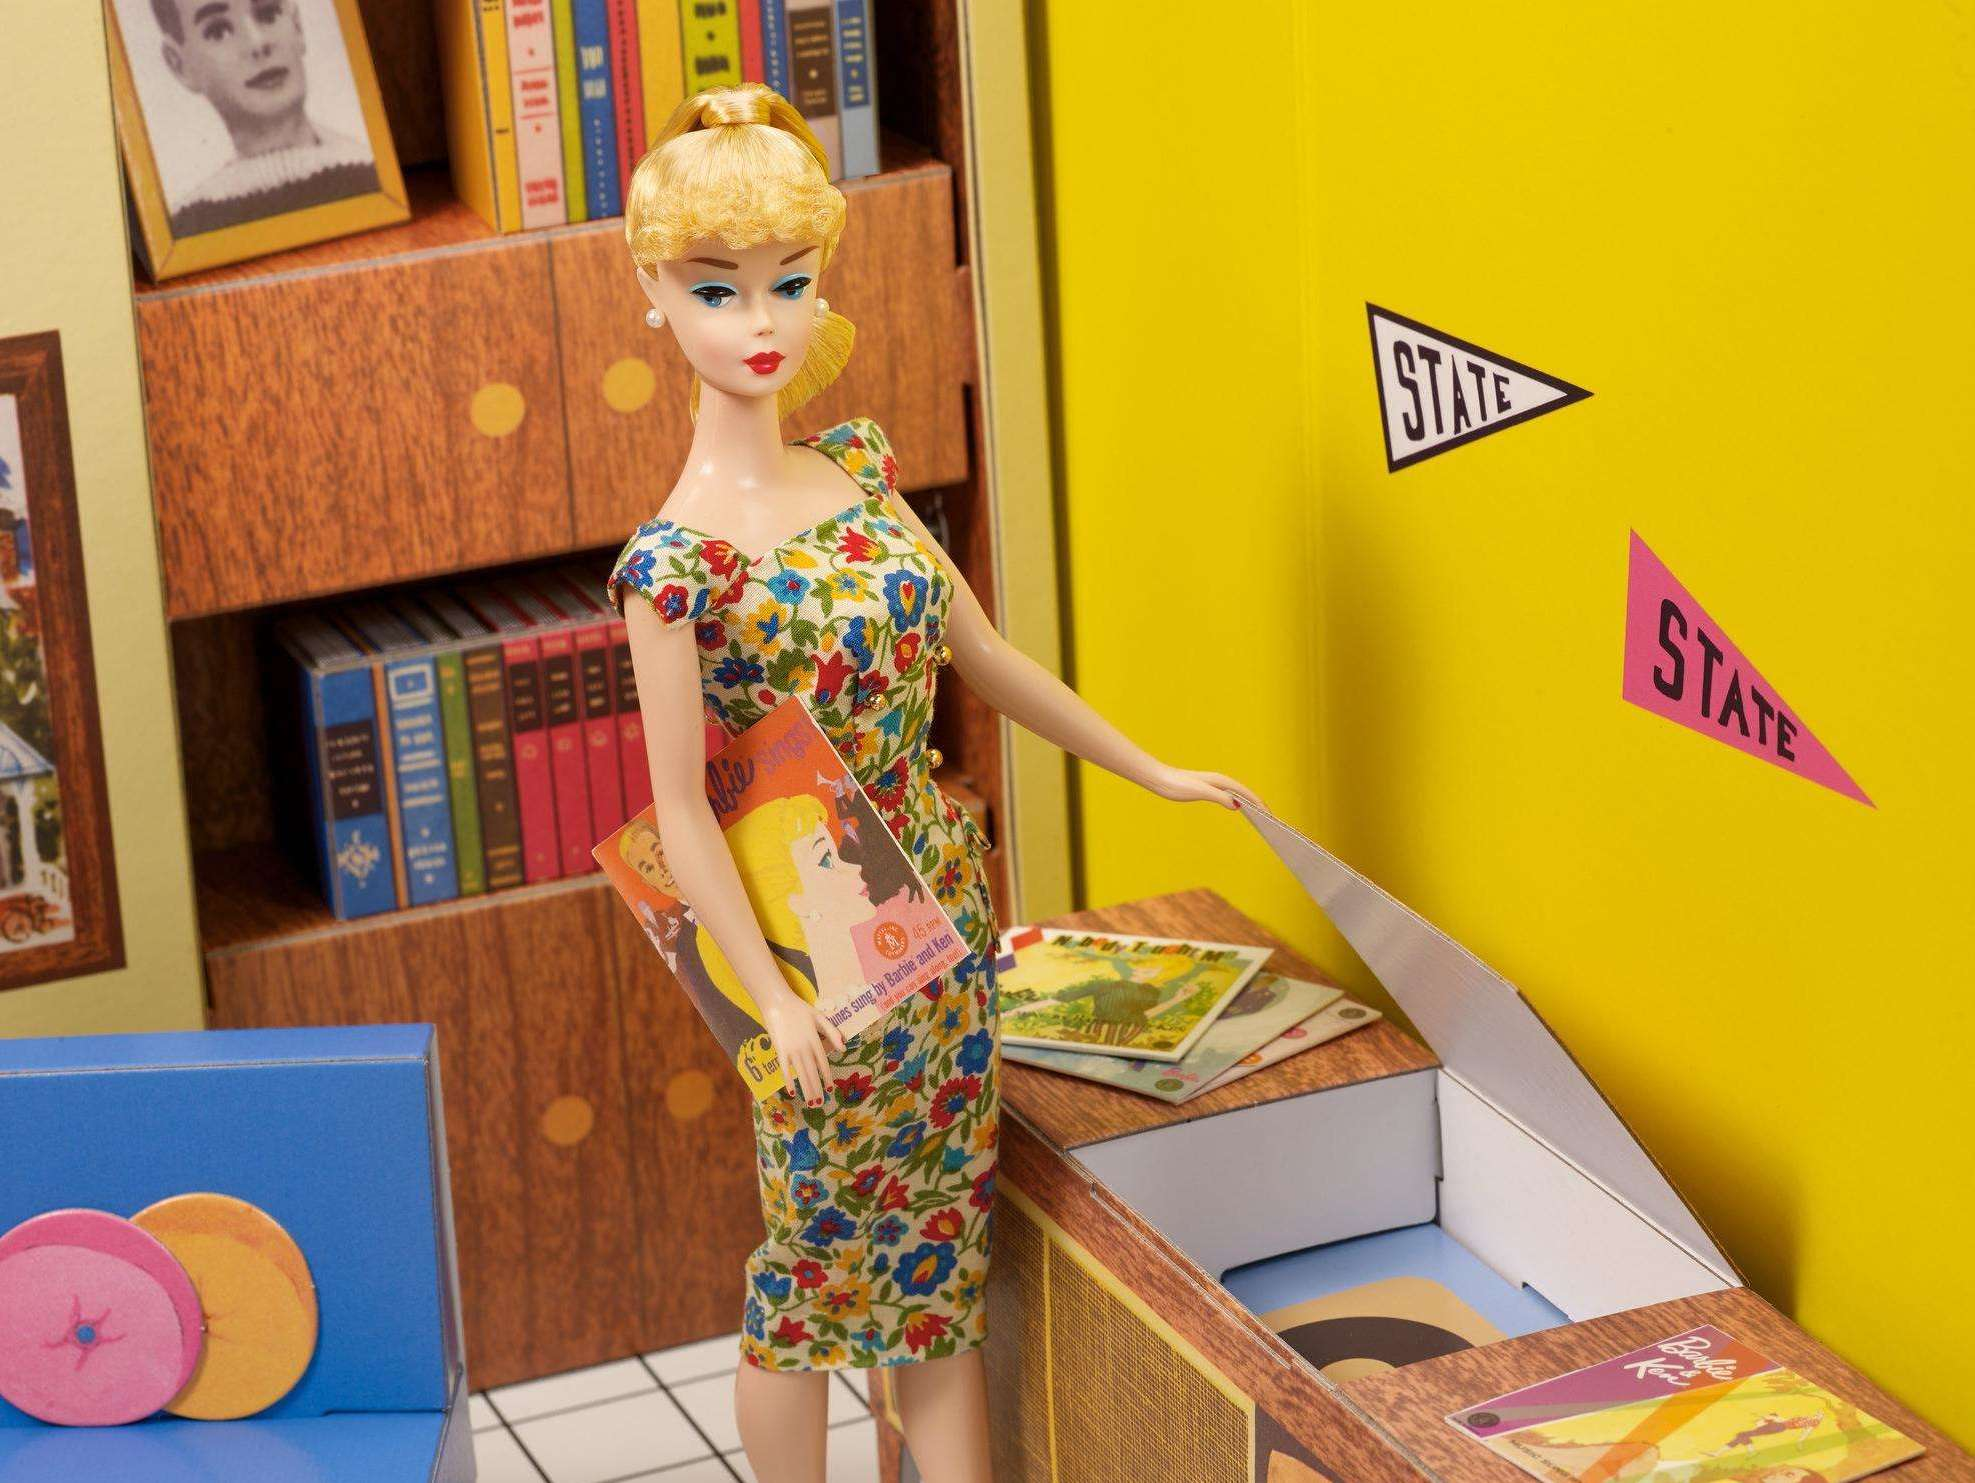 Barbie at record player